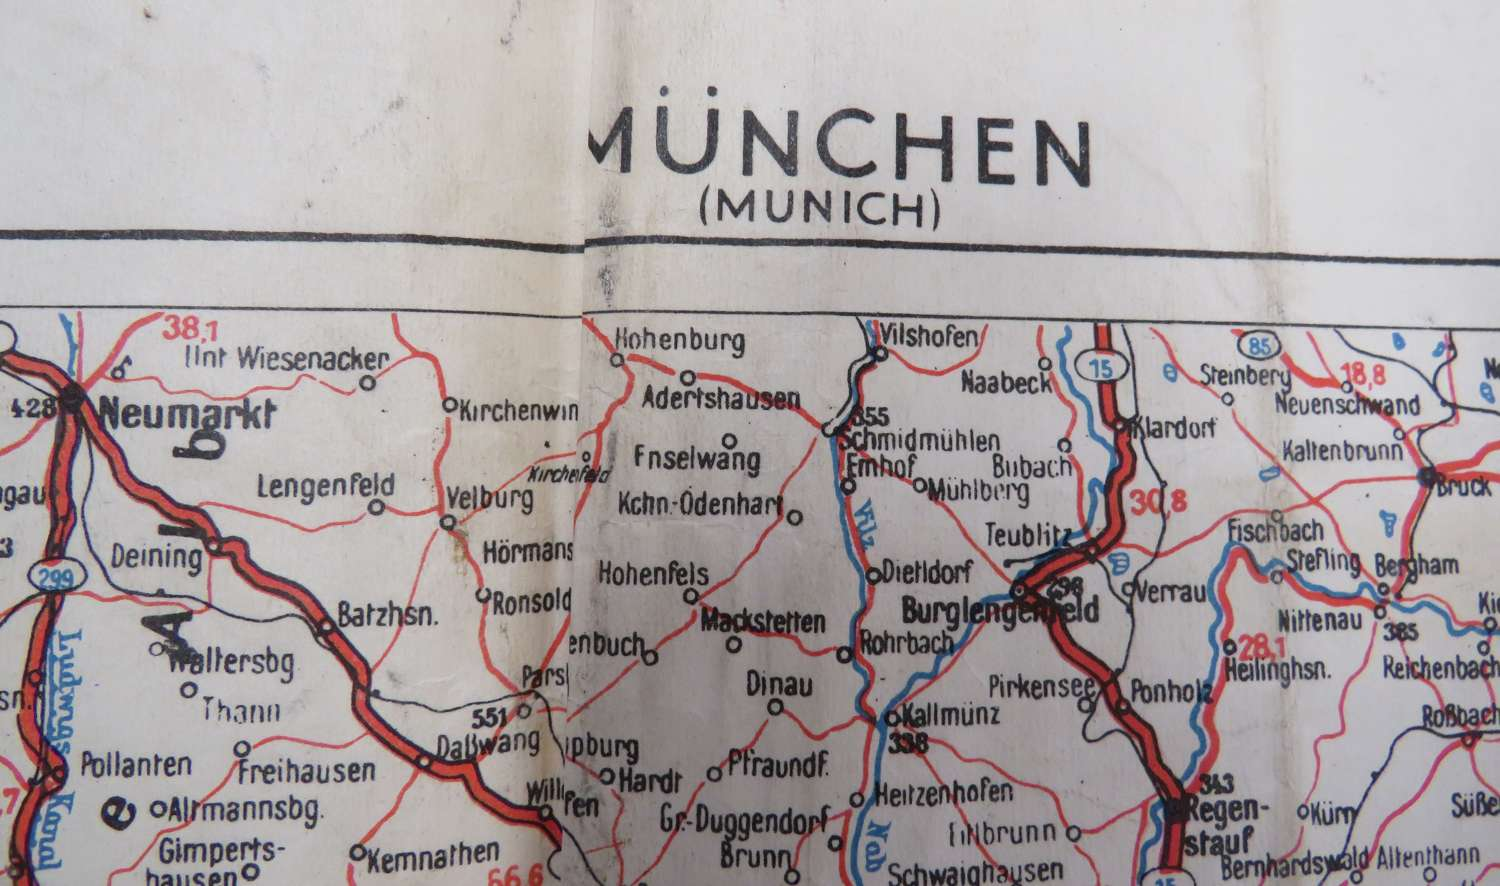 1944 Invasion Transport Map of Munich Germany